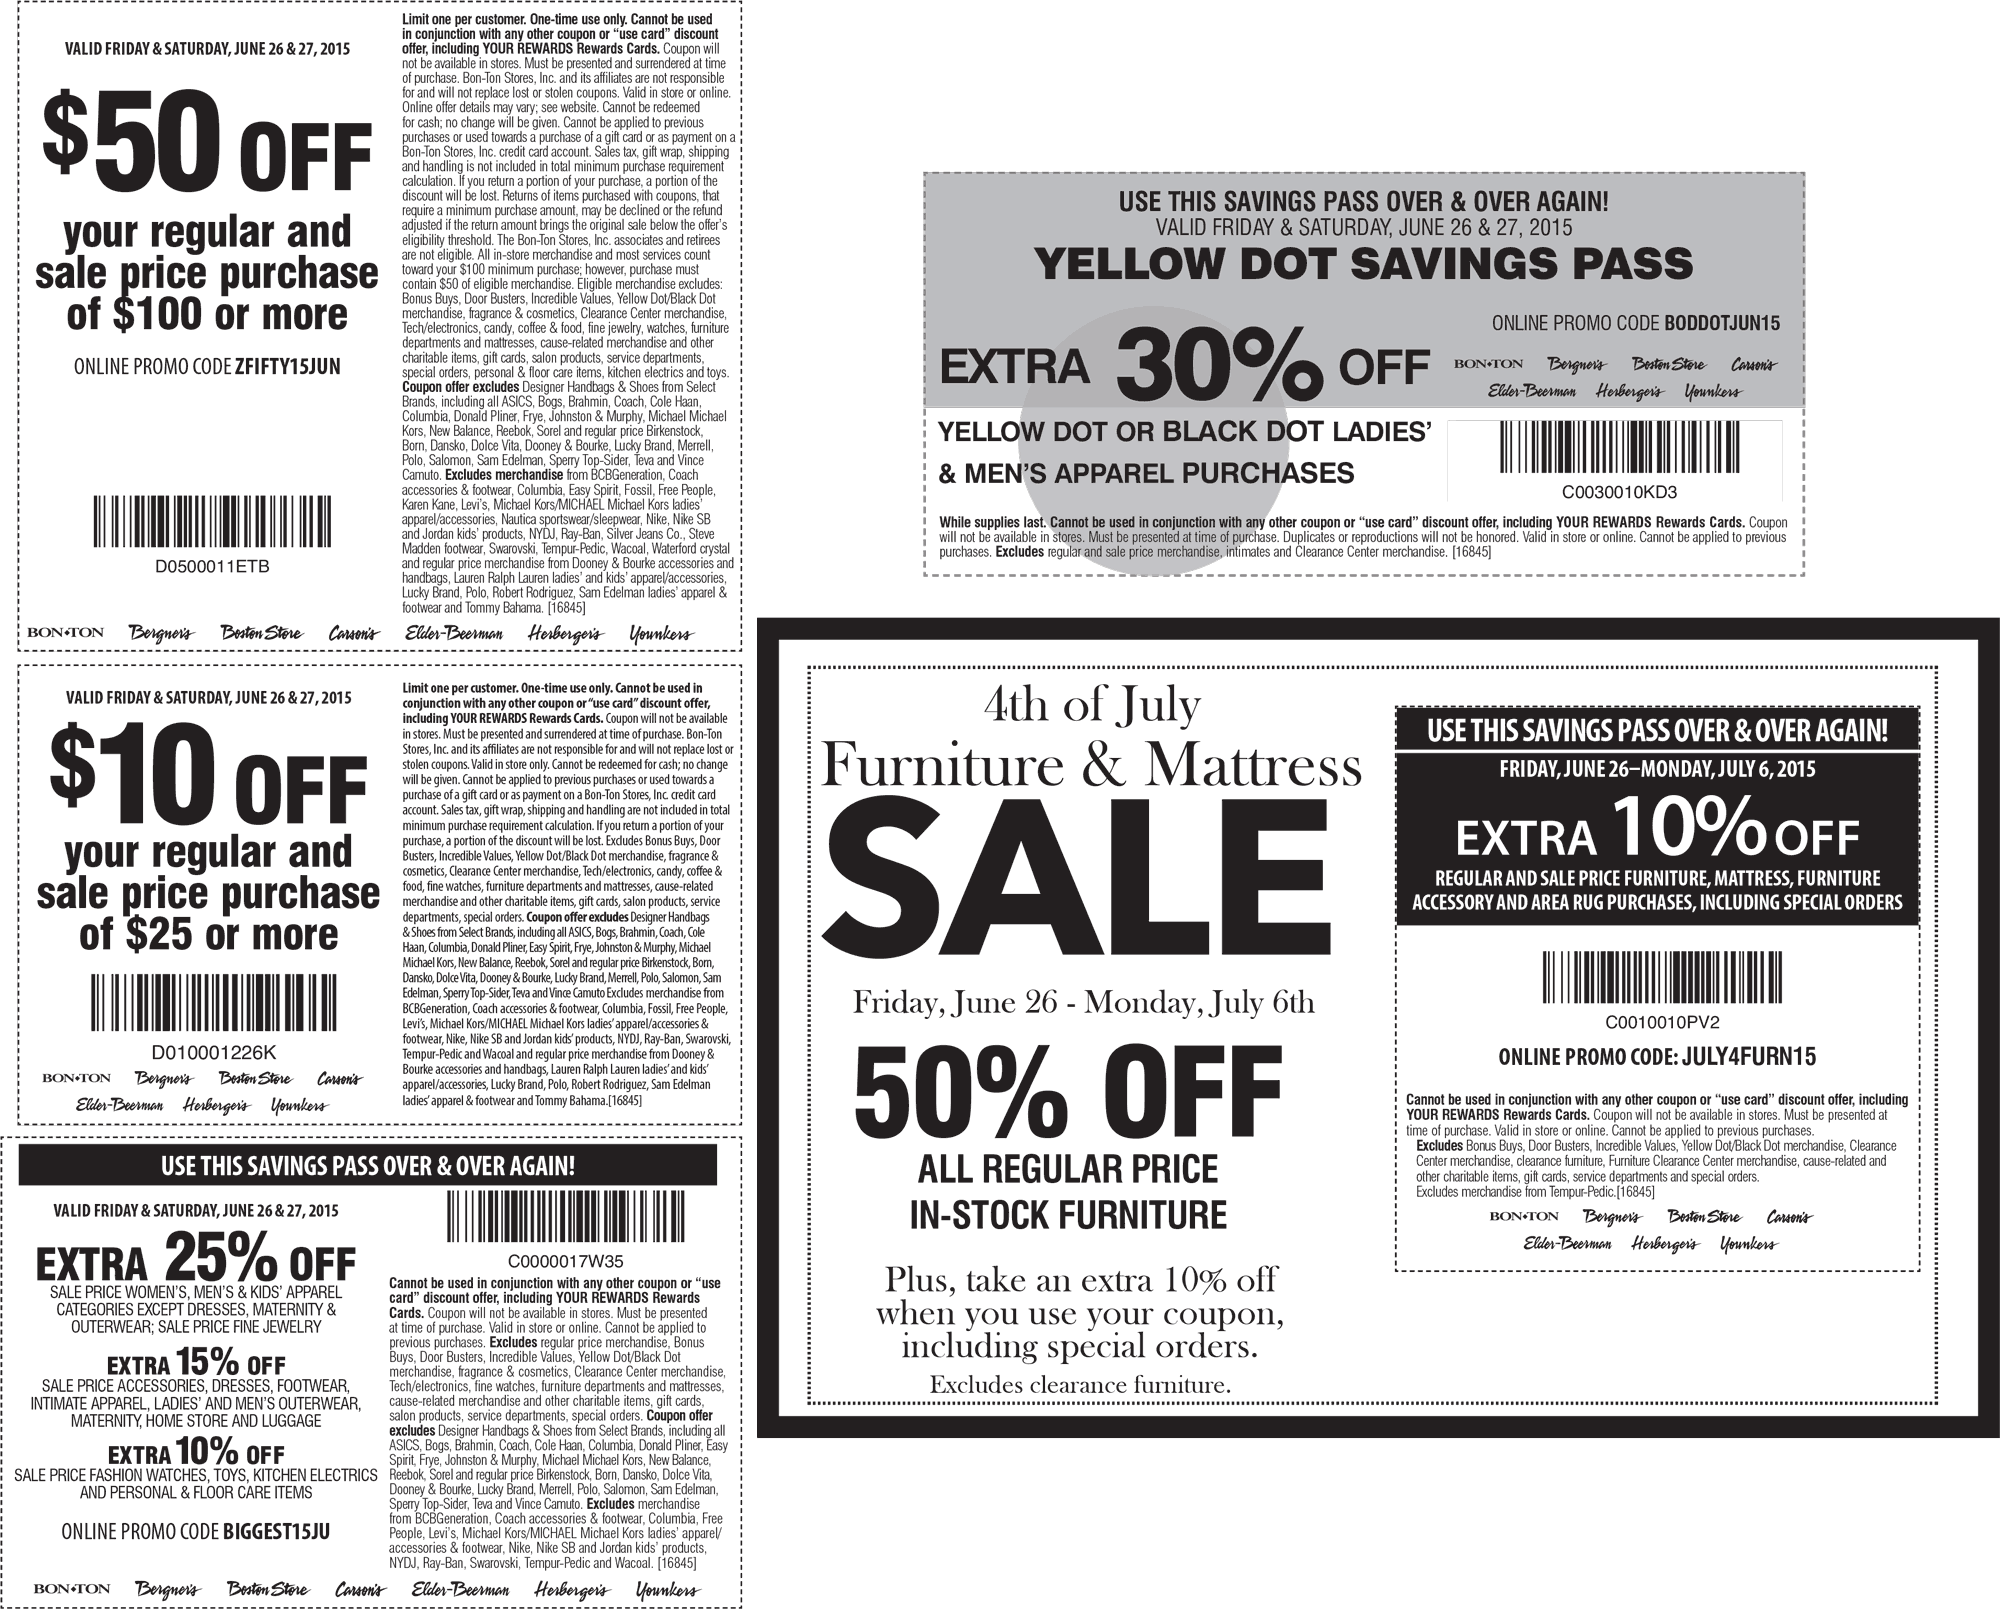 Carsons Coupon May 2017 $50 off $100 & more today at Carsons, Bon Ton & sister stores, or online via promo code ZFIFTY15JUN